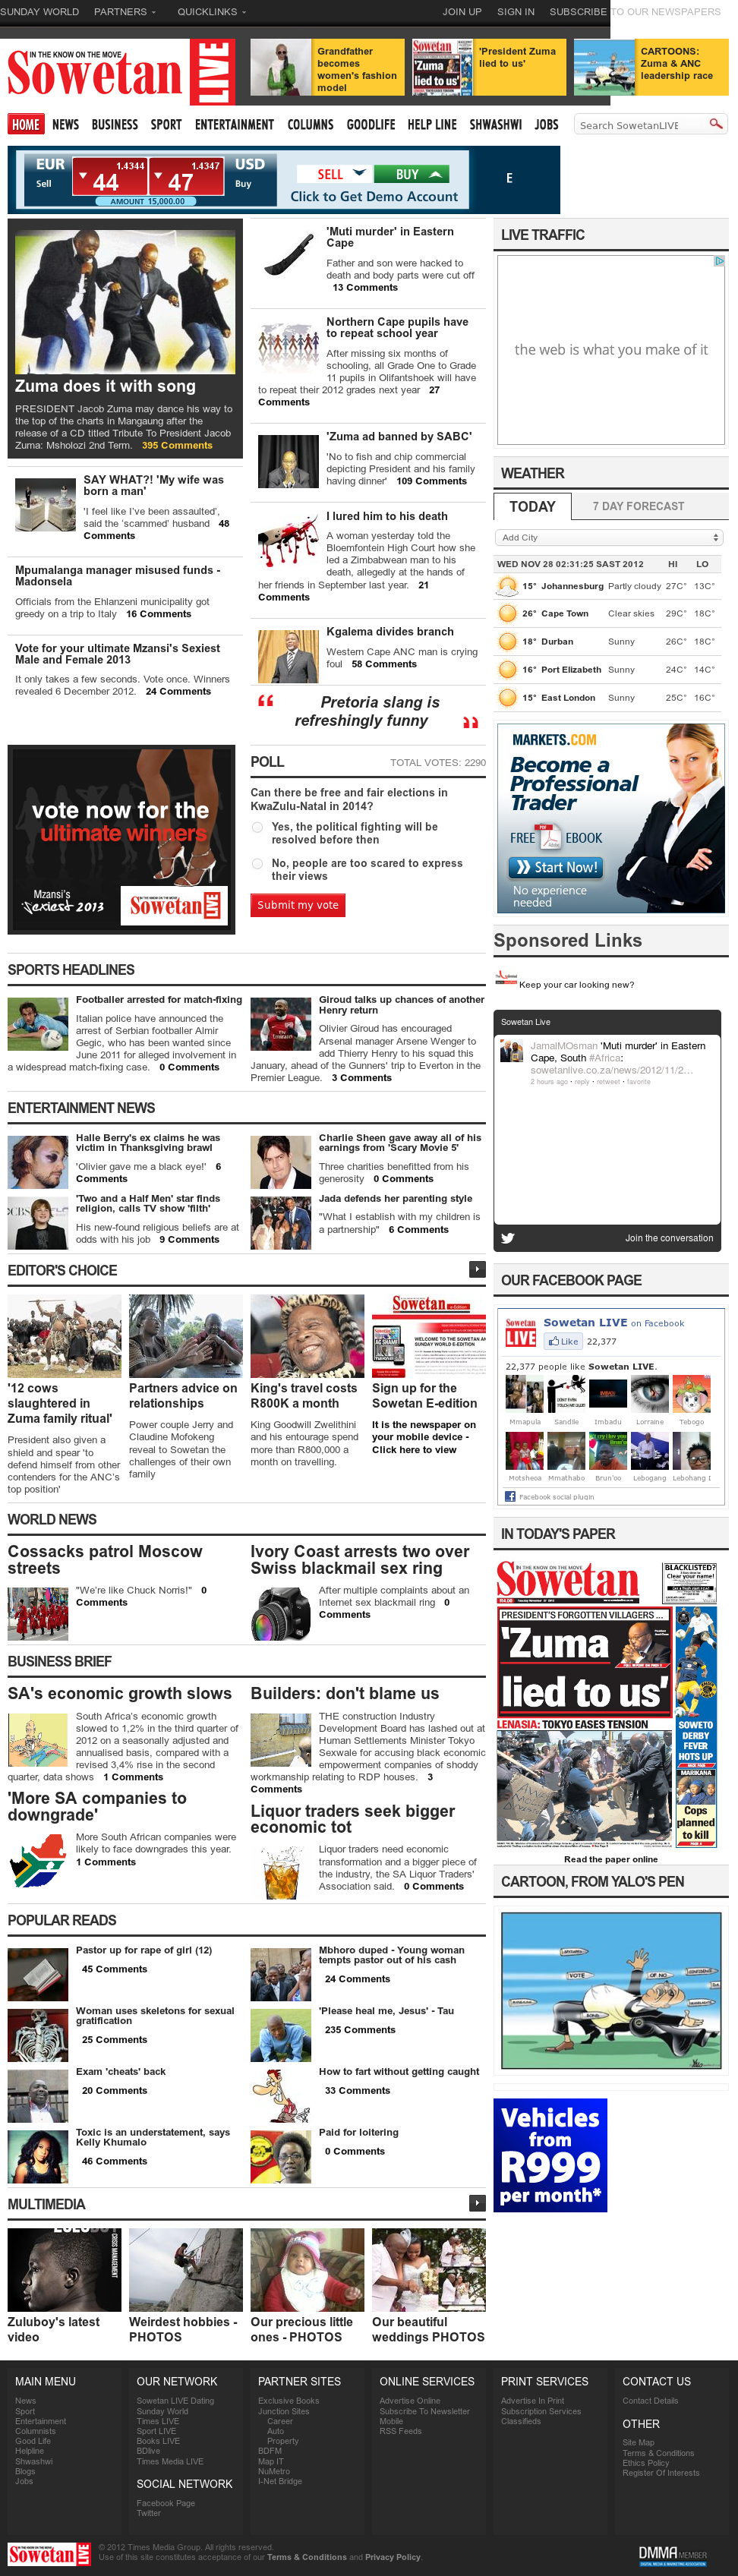 Sowetan Live at Wednesday Nov. 28, 2012, 1:33 a.m. UTC